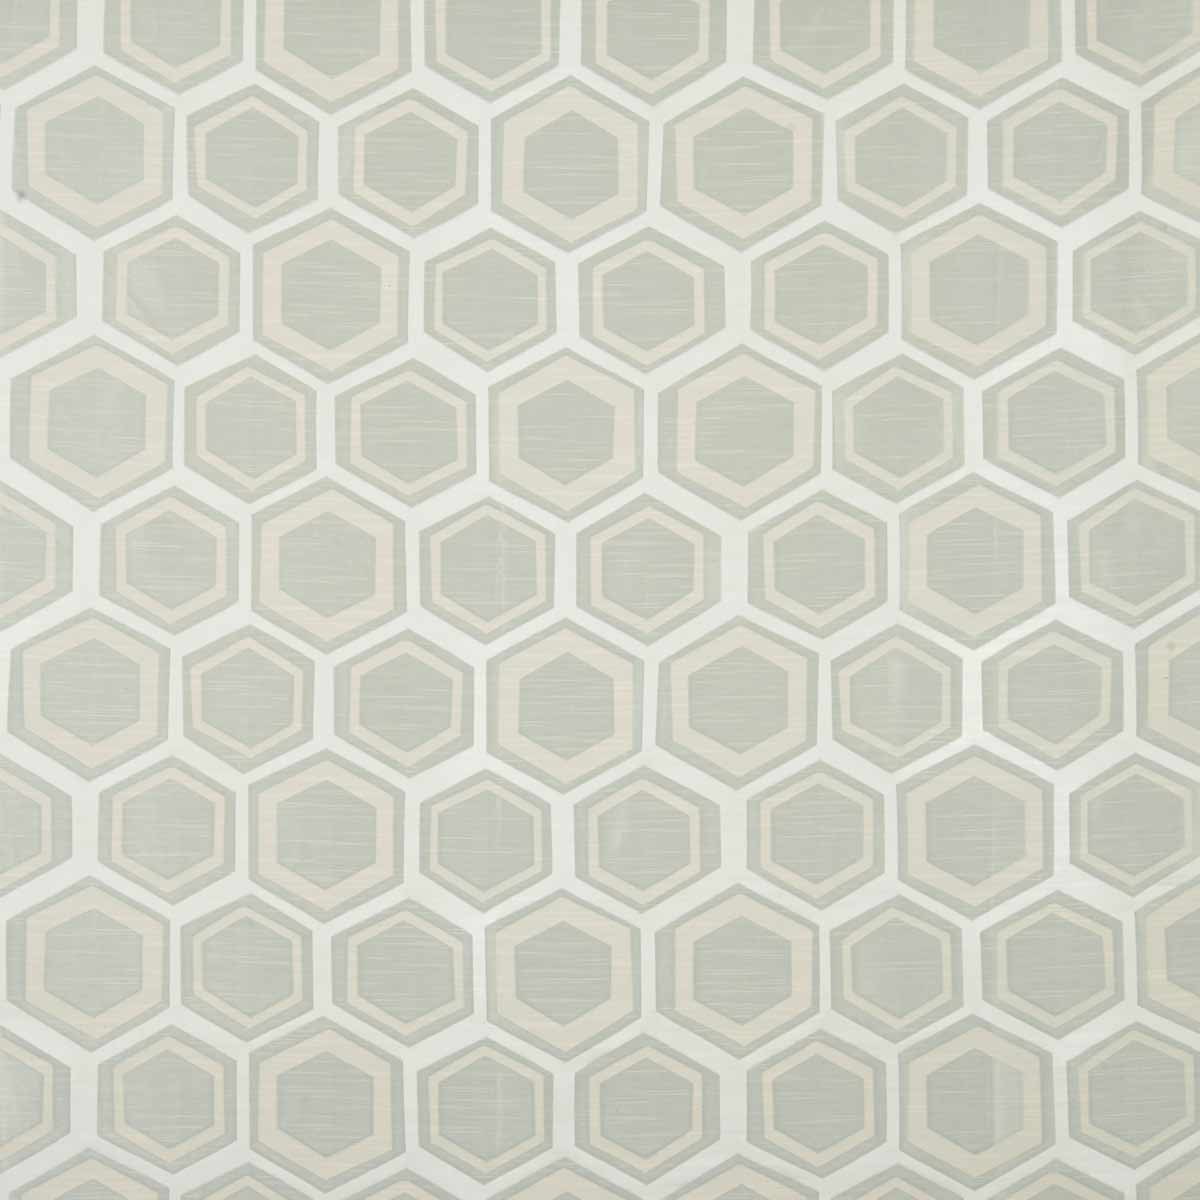 Hexagonal patterned fabric in grey and cream